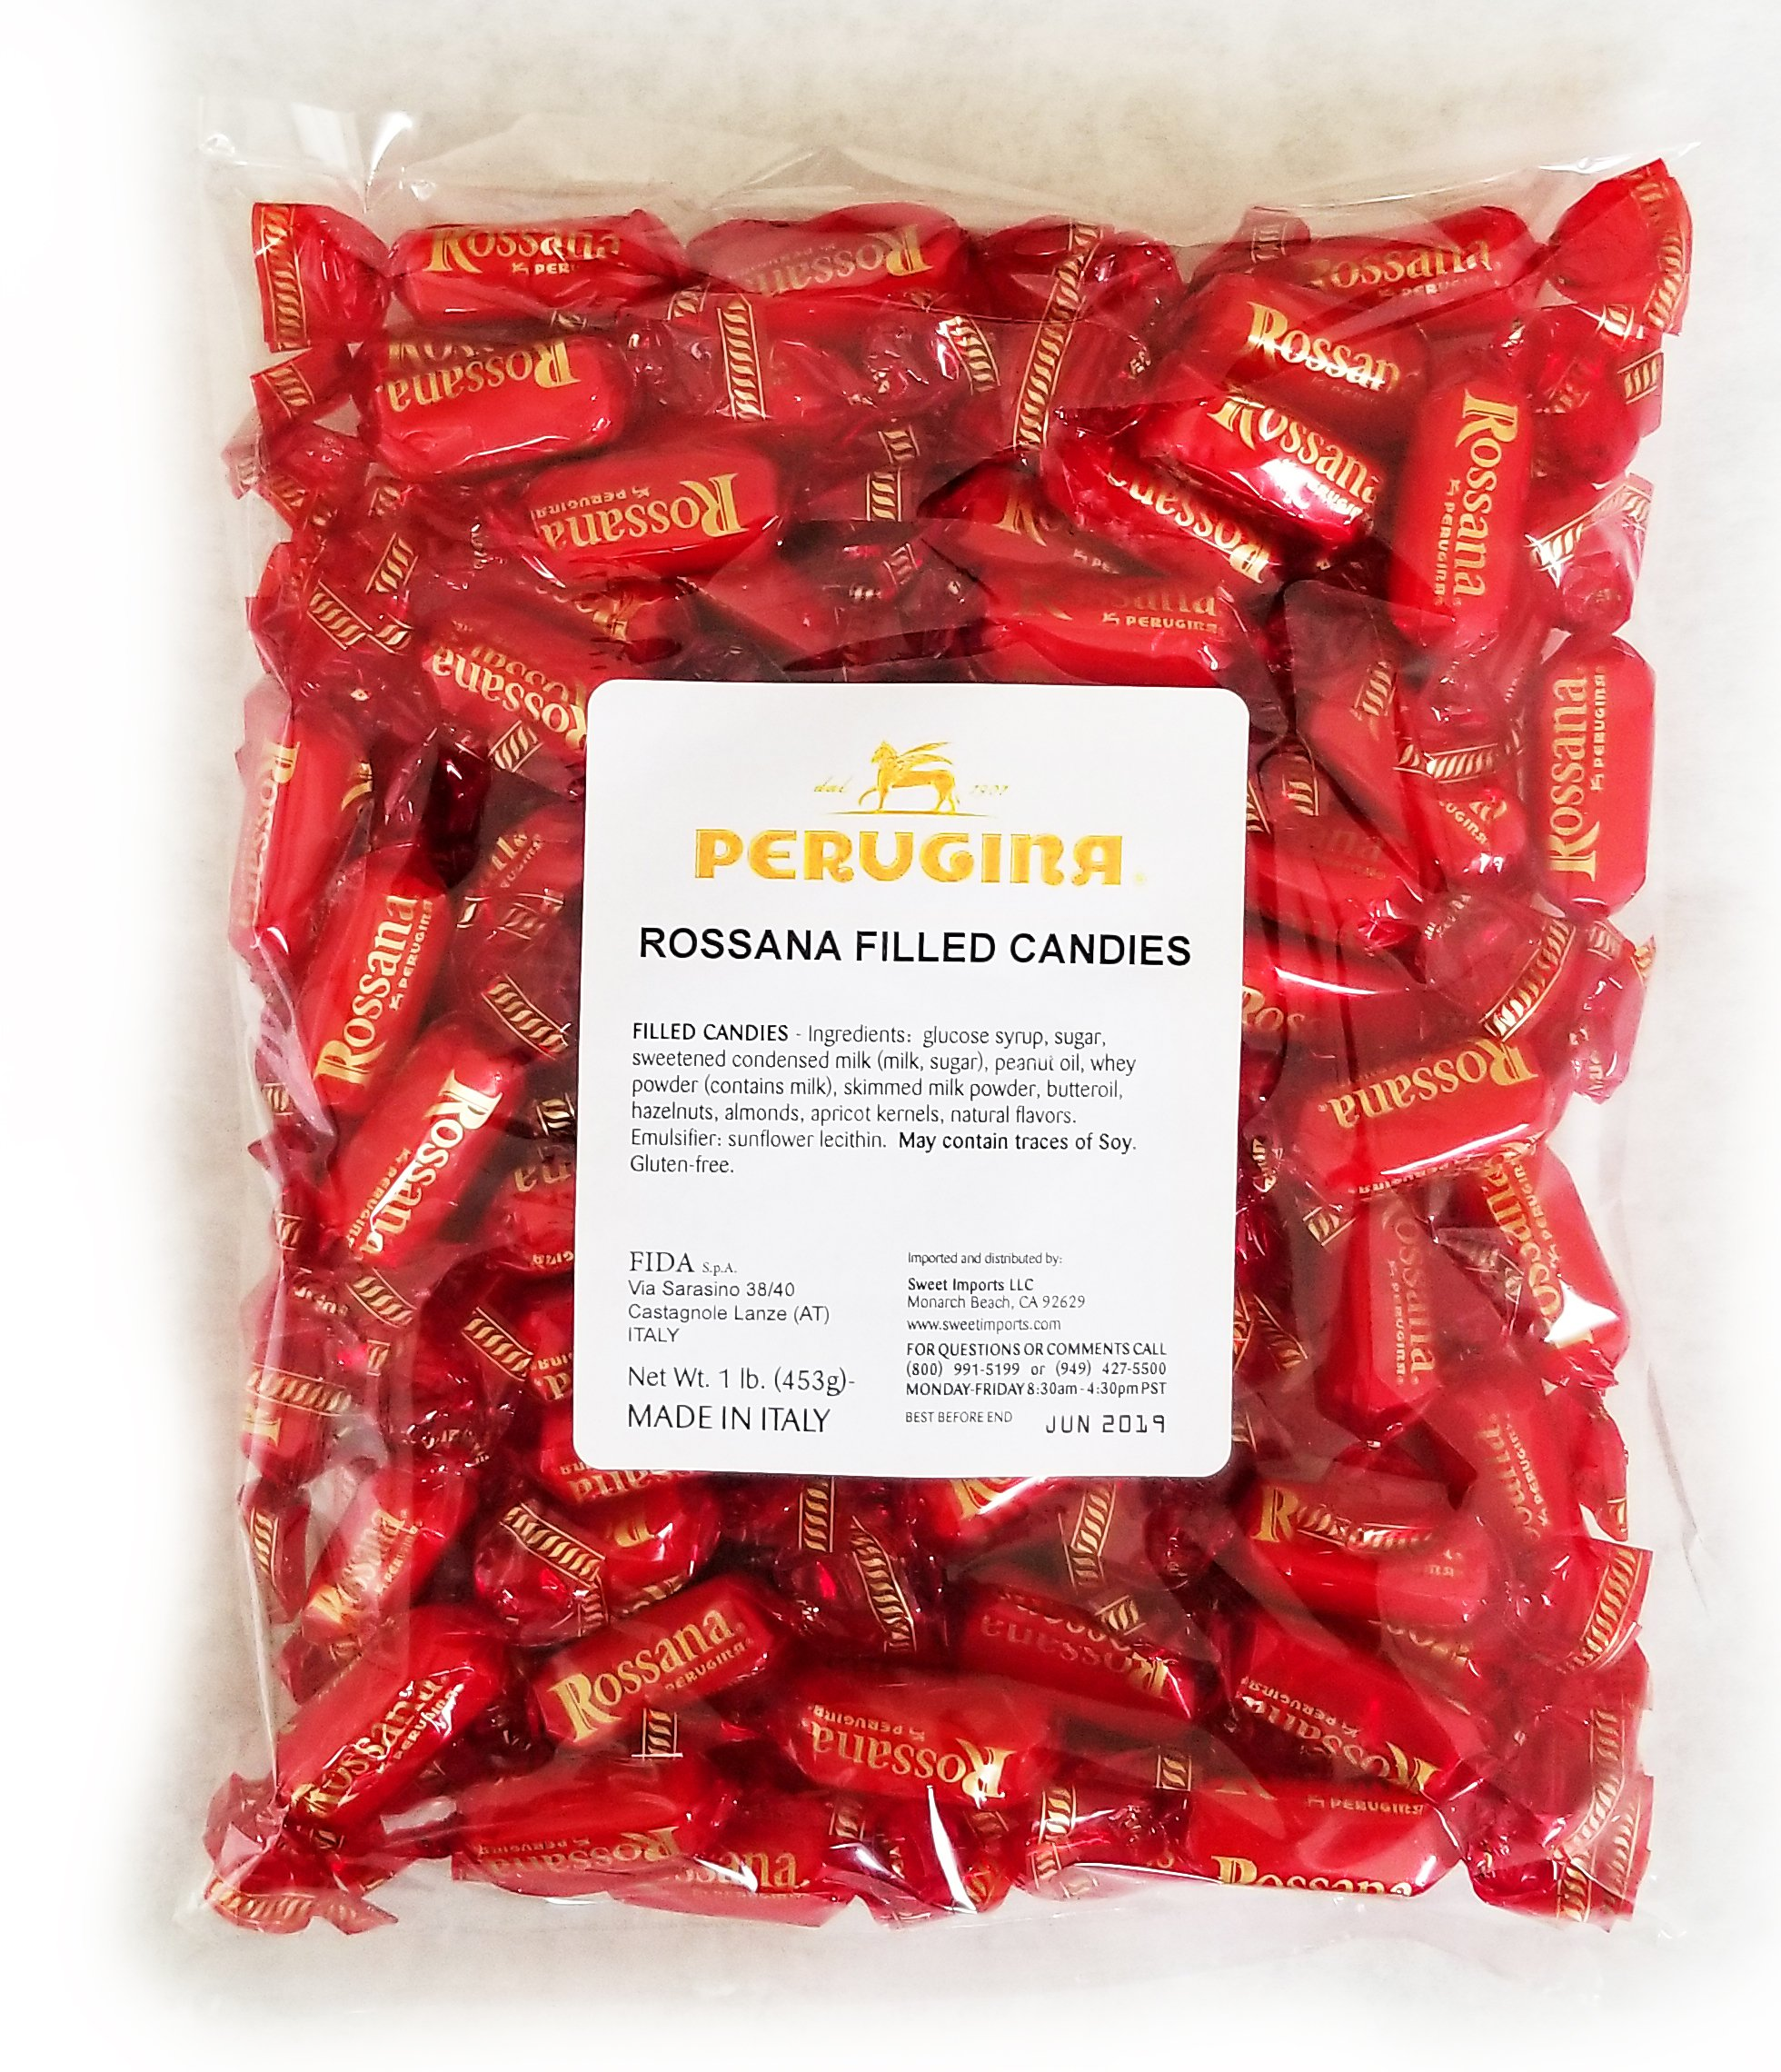 Amazon.com : Perugina Rossana Hard Candies, 1 Pound Bag : Italian Candy : Grocery & Gourmet Food